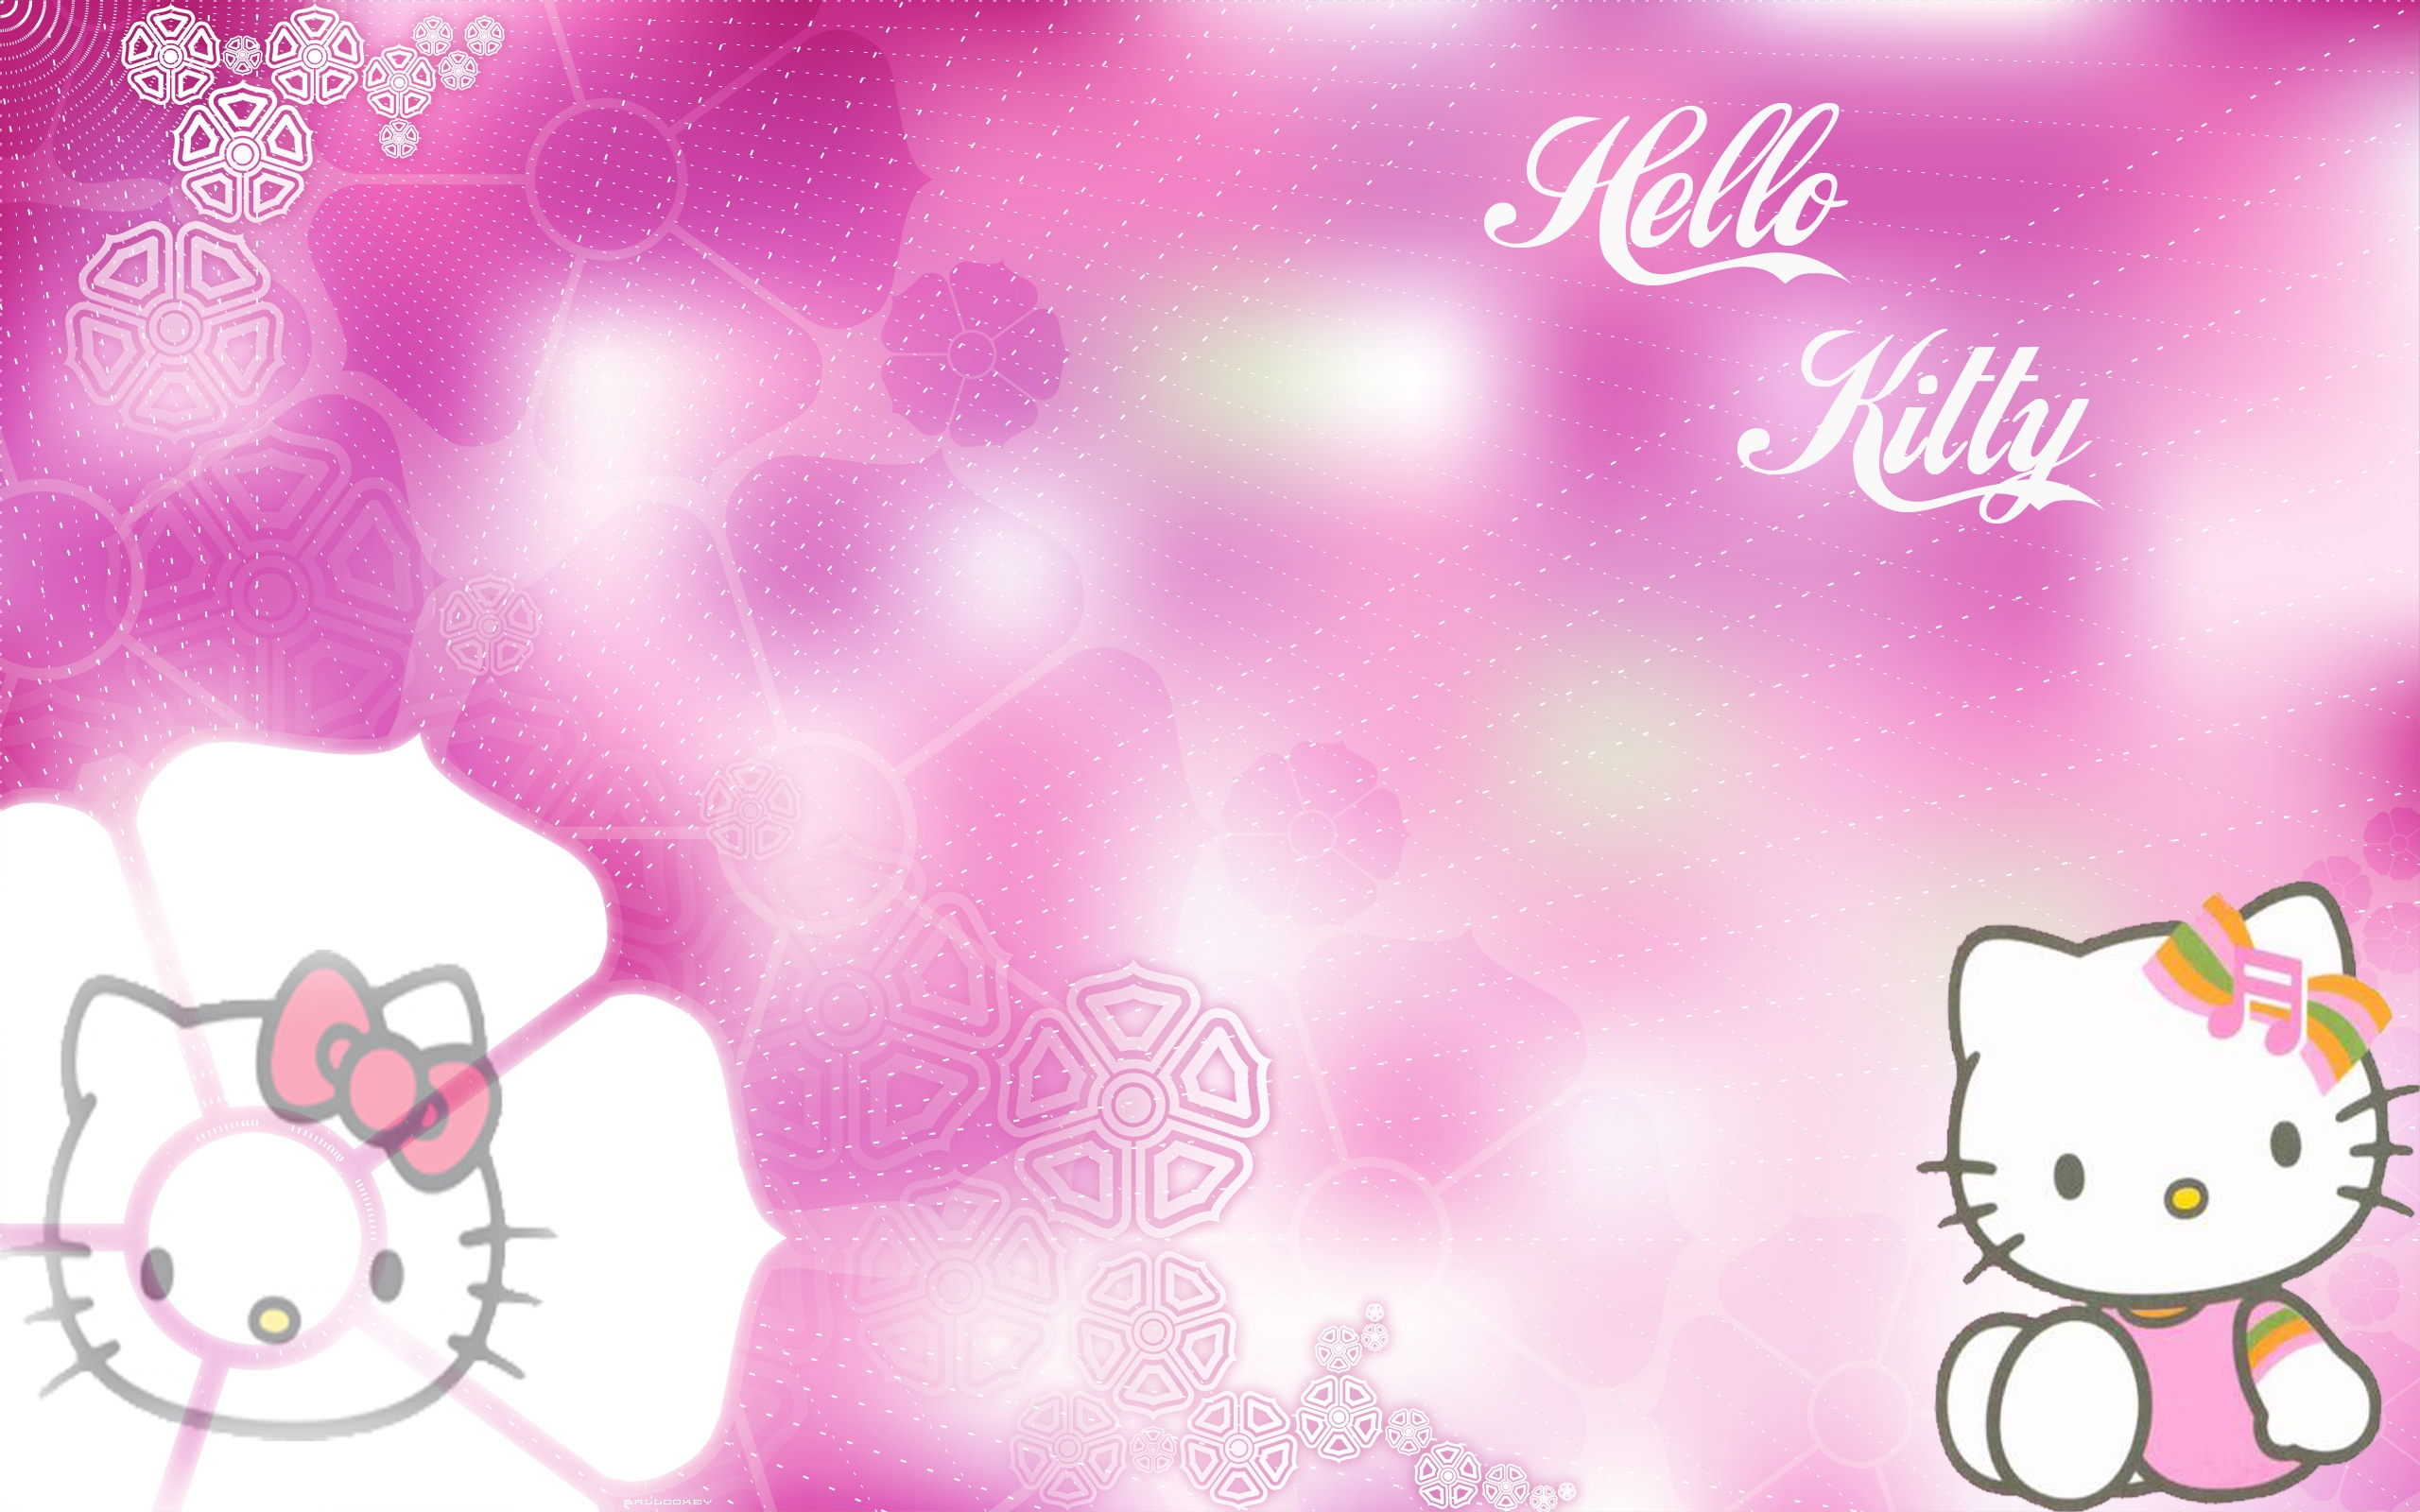 Good Wallpaper Mobile Hello Kitty - Download-HD-Hello-Kitty-Images  Pic_52050.jpg